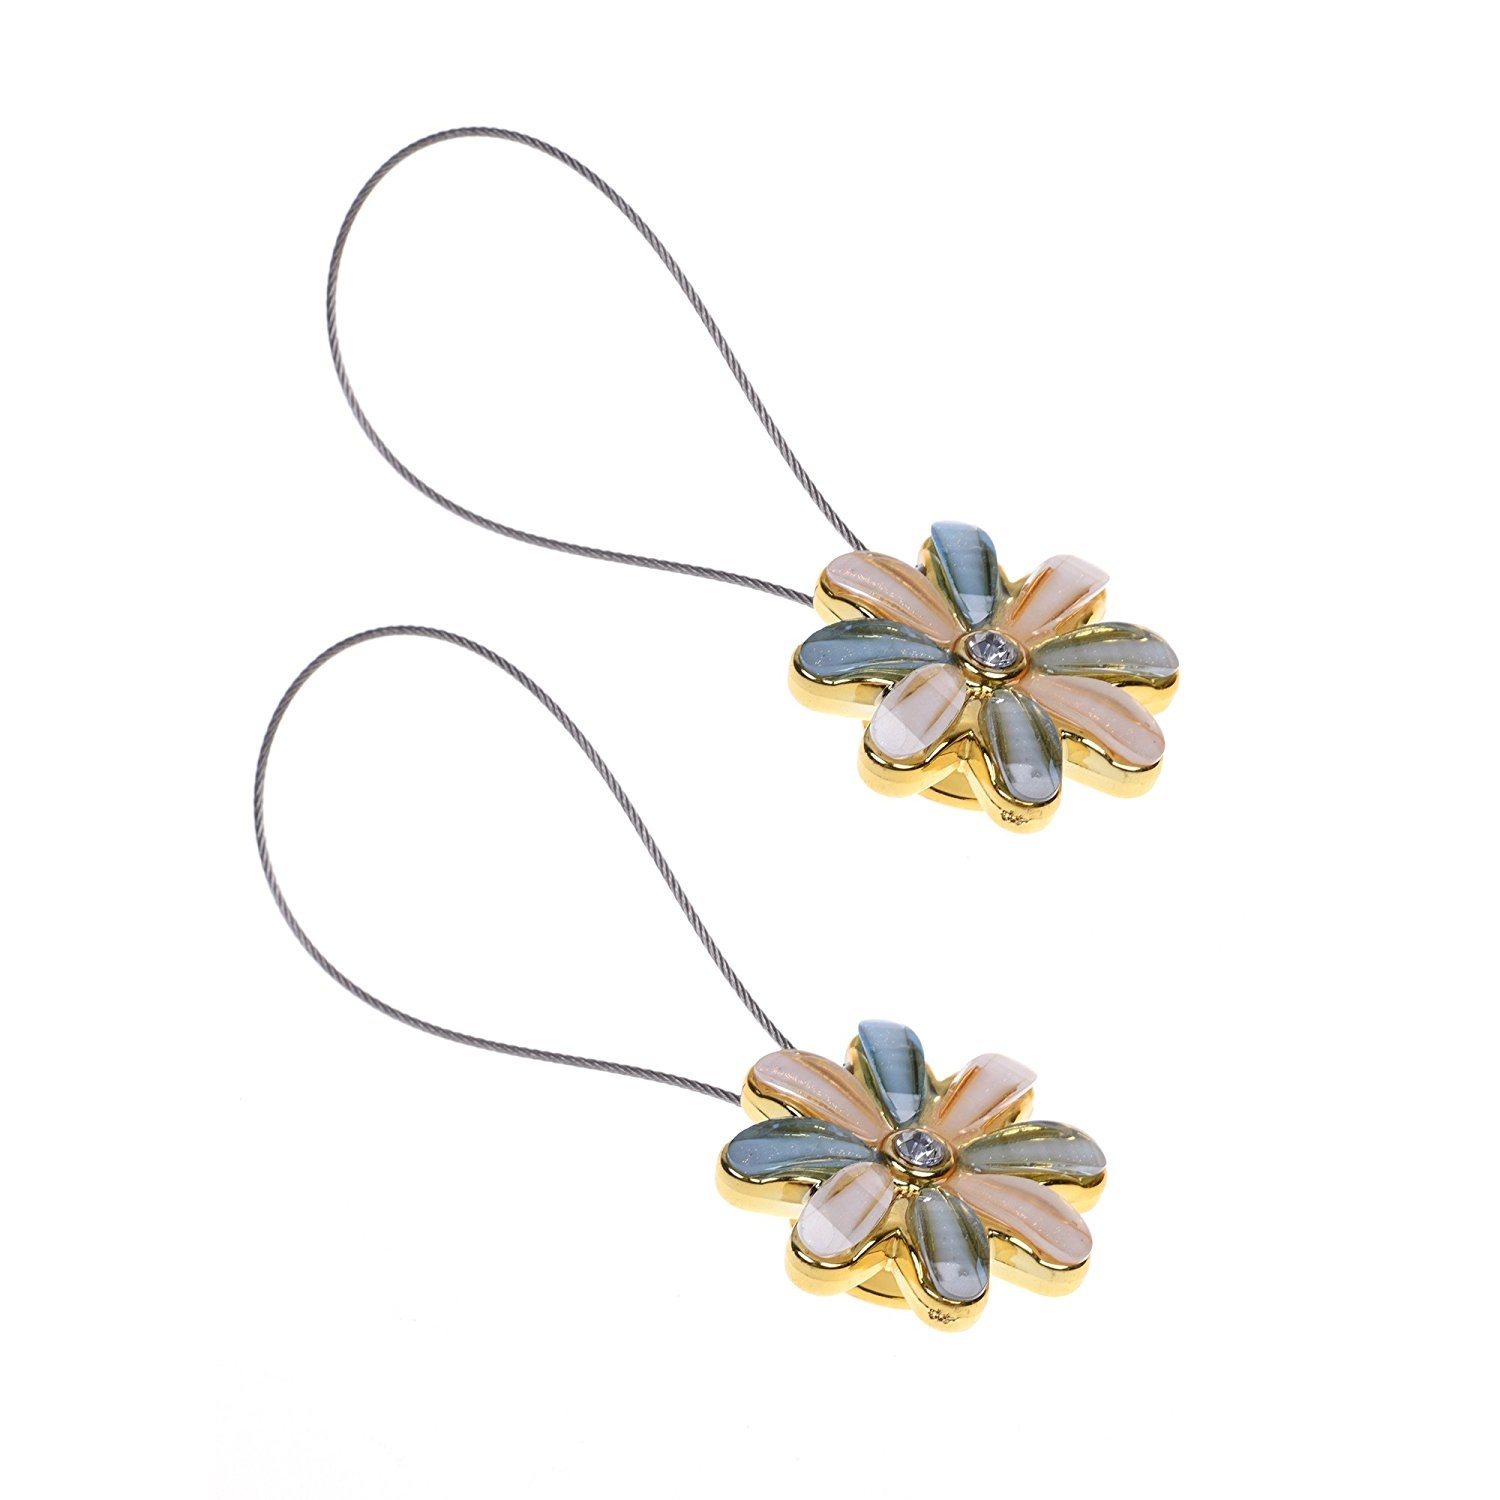 Cosmos 1 Pair Double Colour Magnetic Flower Curtain Clips Tiebacks Holdbacks By Cosmos Shop Online For Homeware In New Zealand